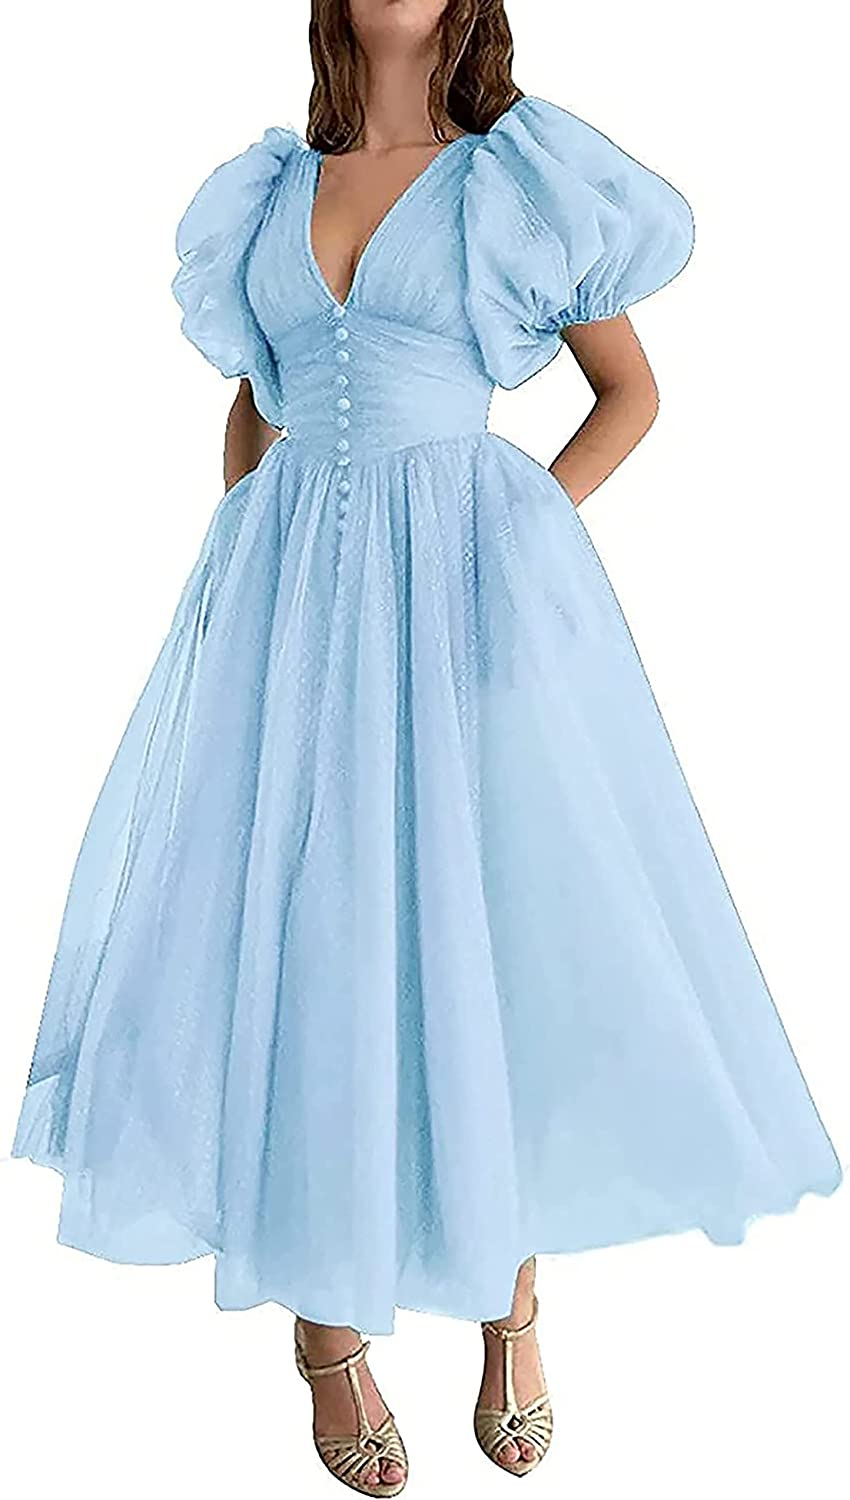 Tianzhihe Women's Dotted Ball Gown Tulle A-line Evening Dress Vintage Prom Sweet 16 Princess Dresses with Pockets